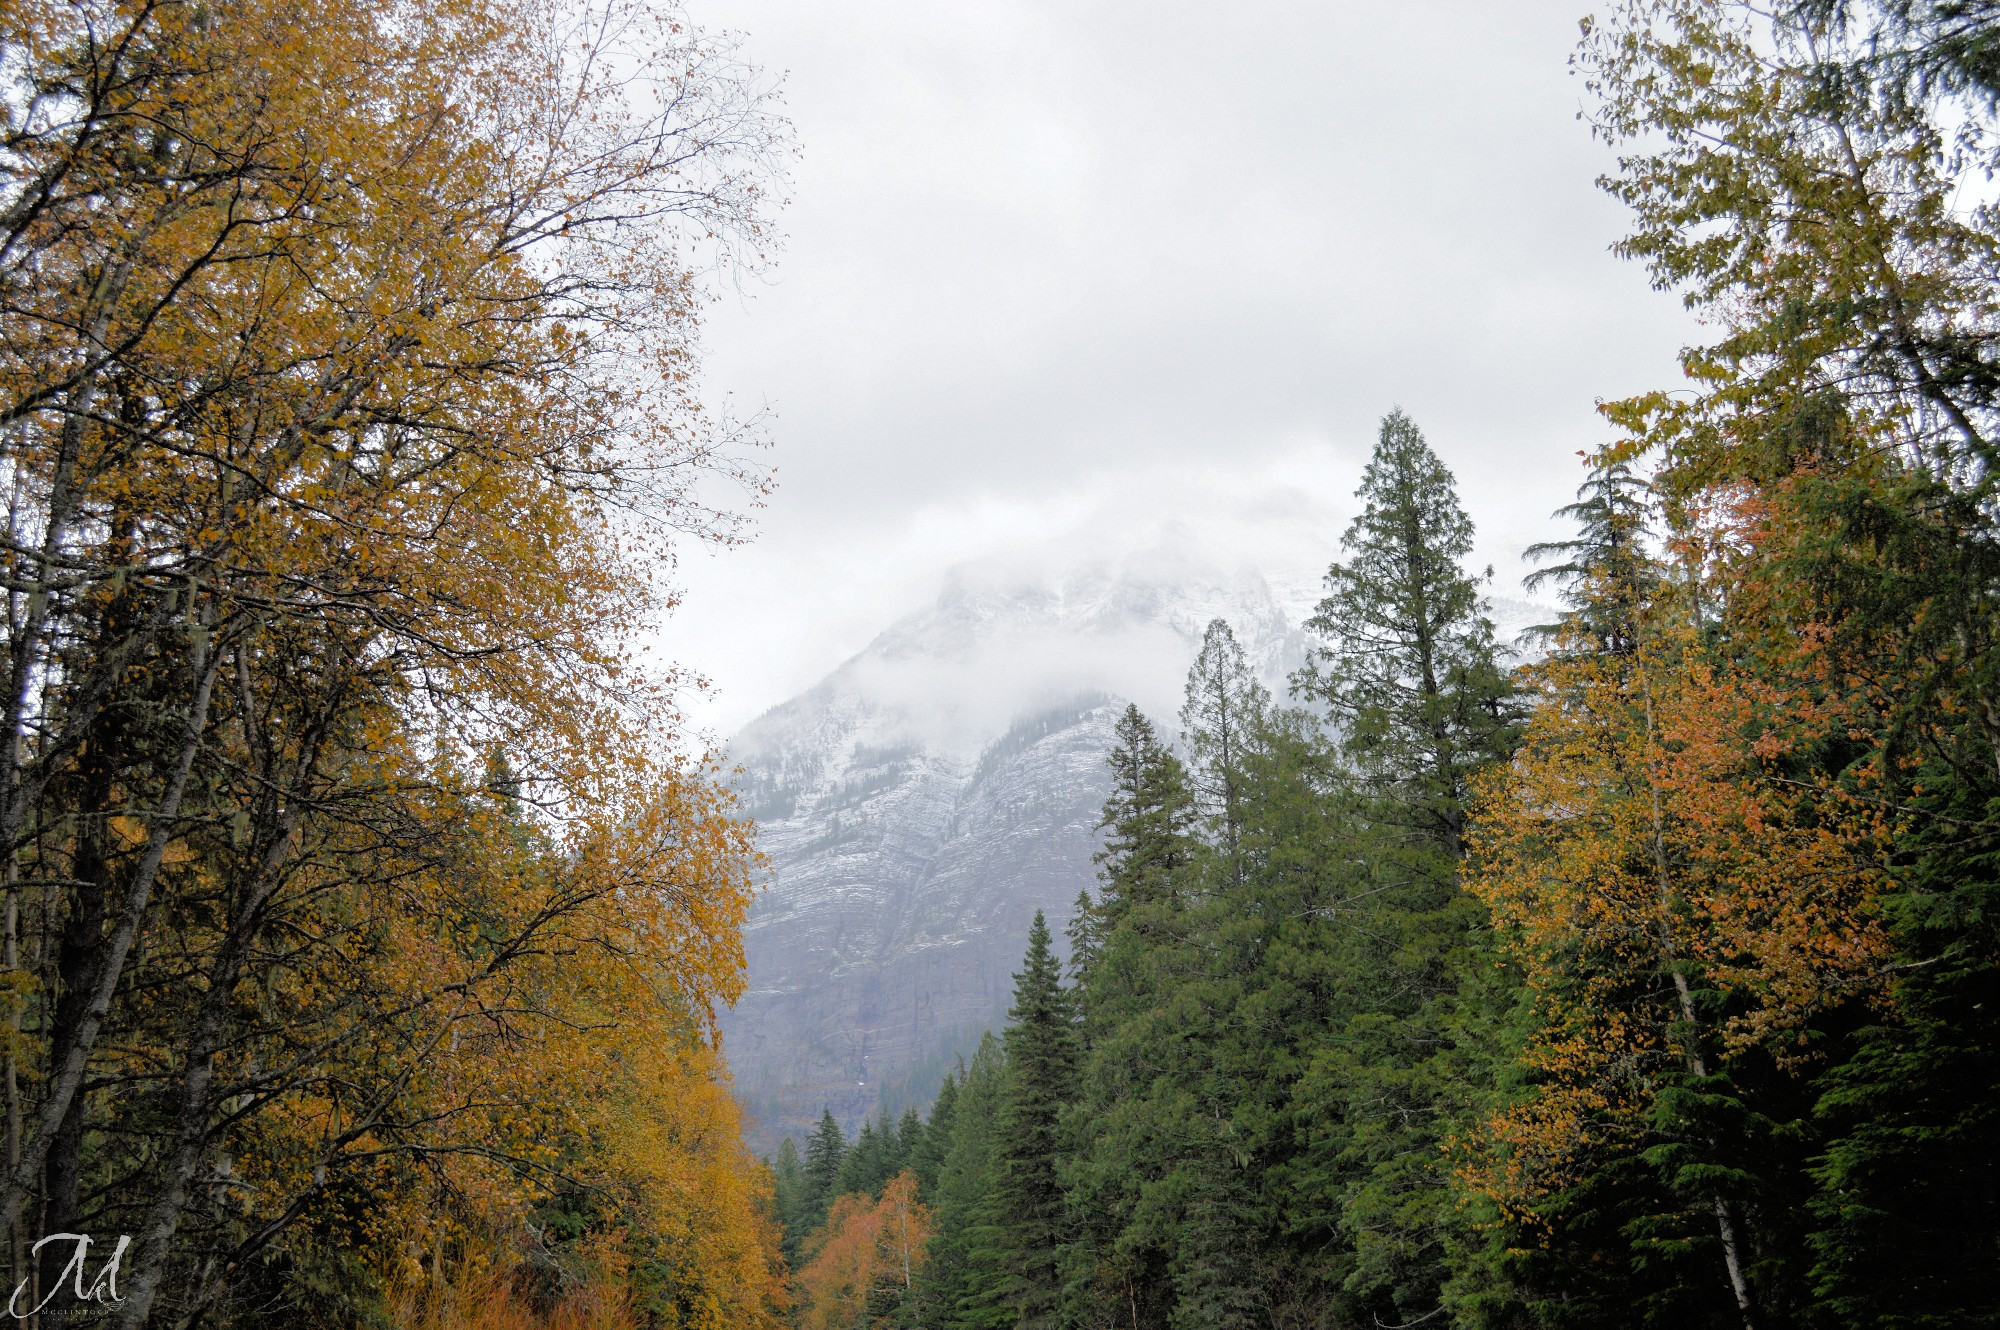 October Mist in Glacier National Park_©MKMcClintock | #Montana #mountains #snow #autumn #fall